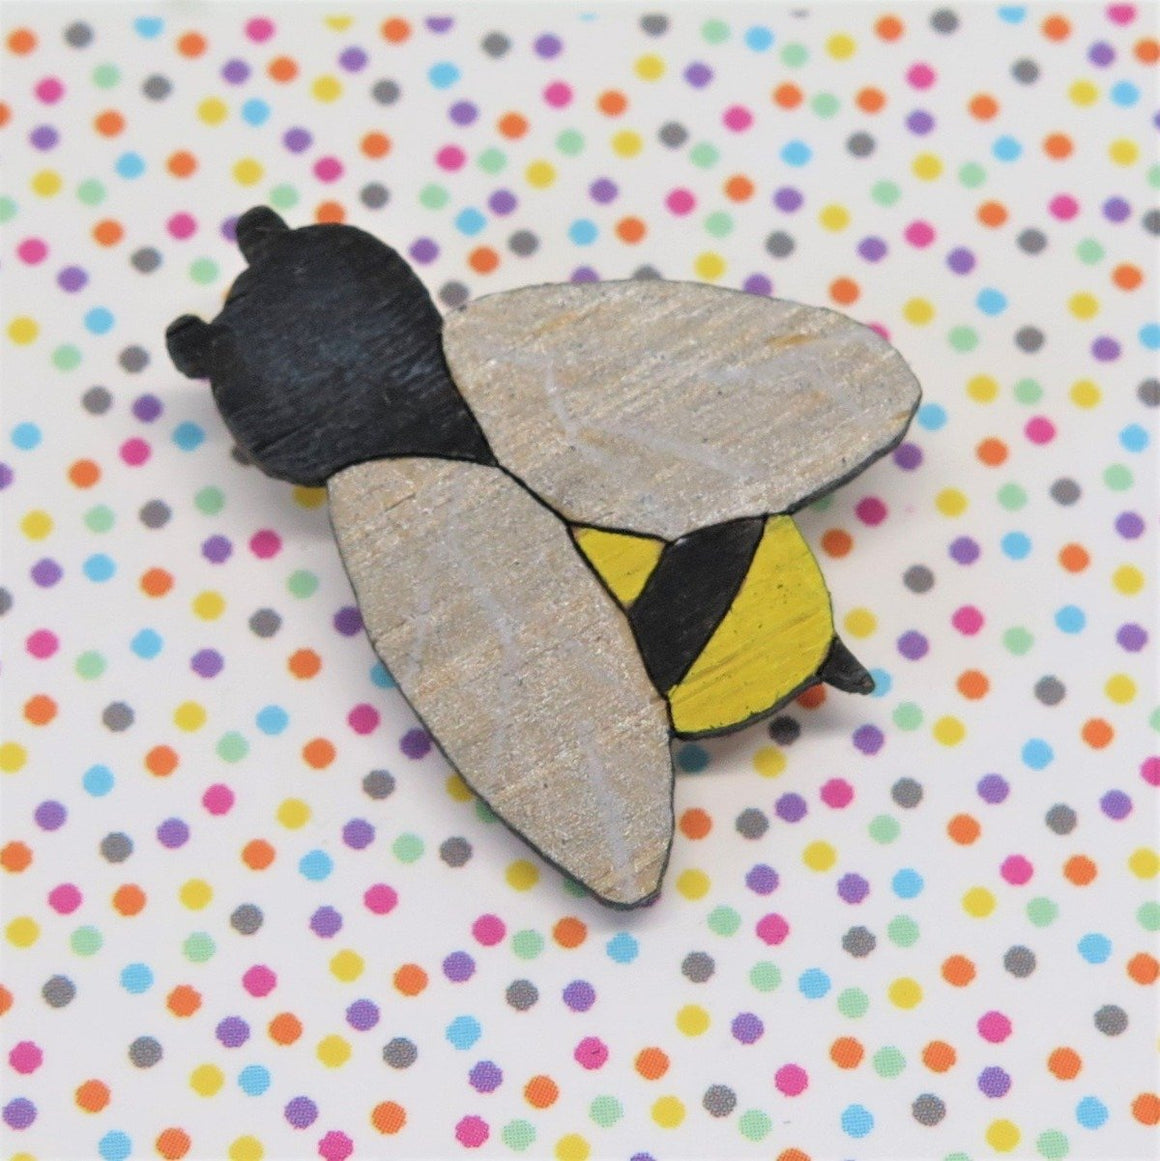 A pin style brooch depicting a yellow and black striped bee. Its wings are painted in variegated silver and white. Made from bamboo wood and hand painted. Shown on a polka dot background.